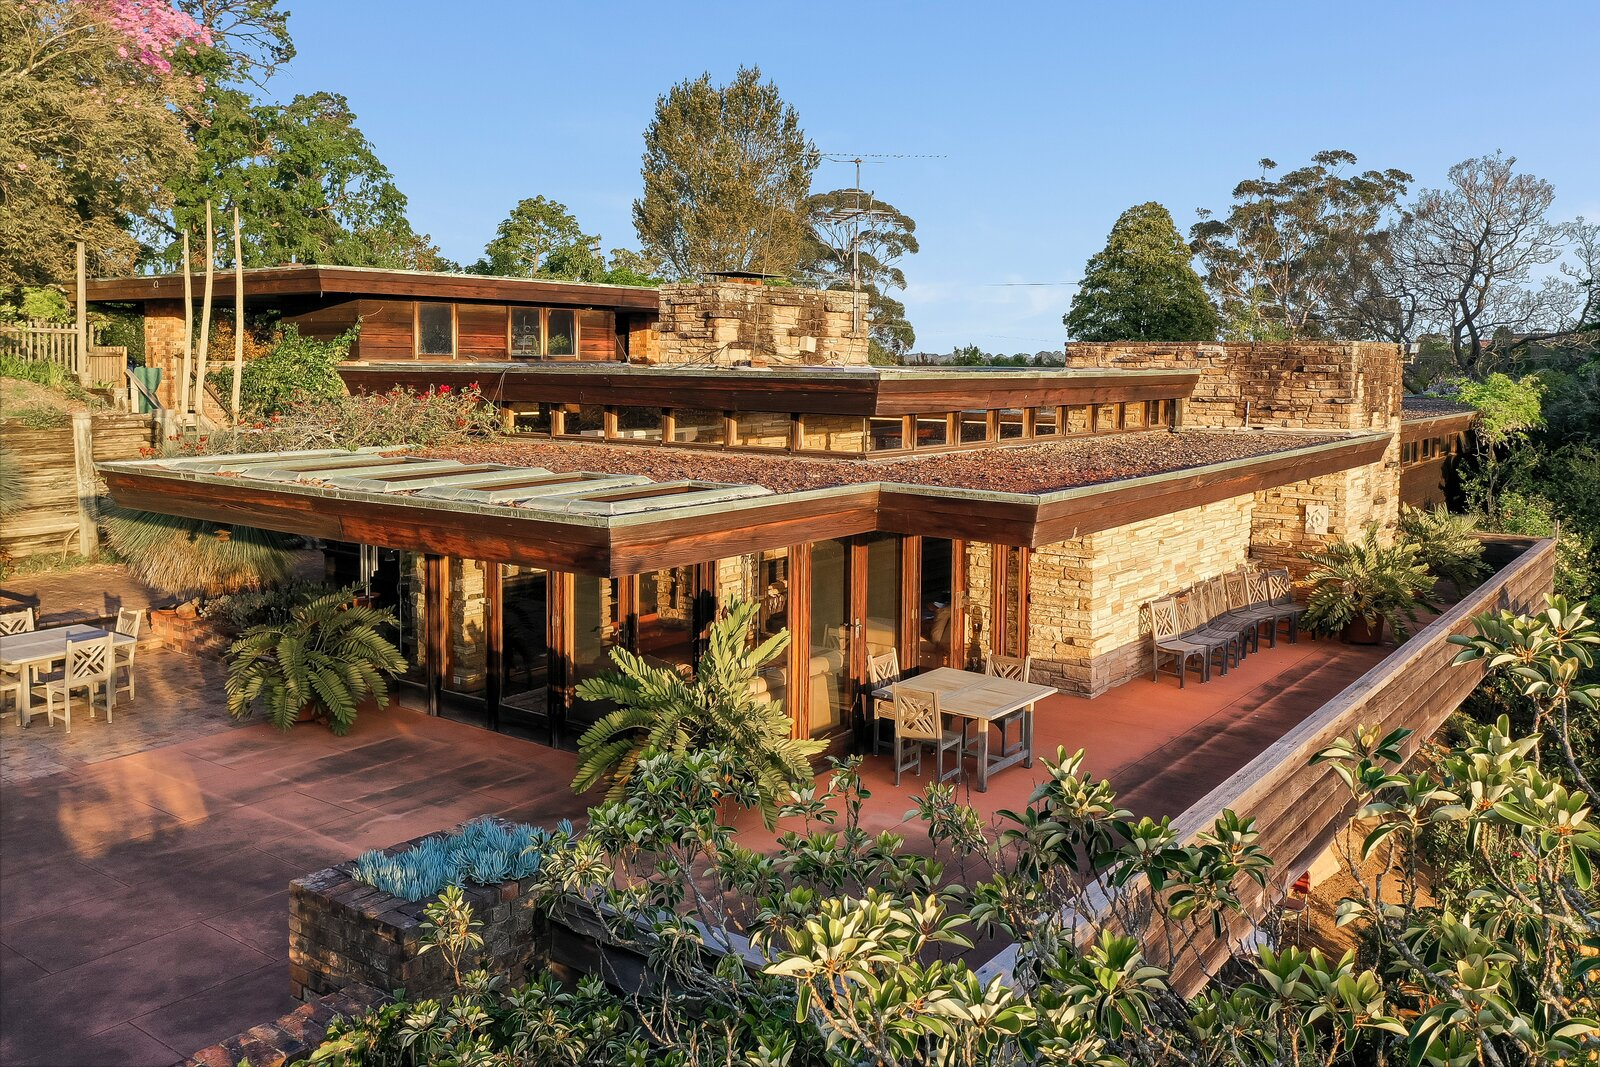 An Australian Architect's Dazzling Interpretation of Prairie Style Lists for the First Time